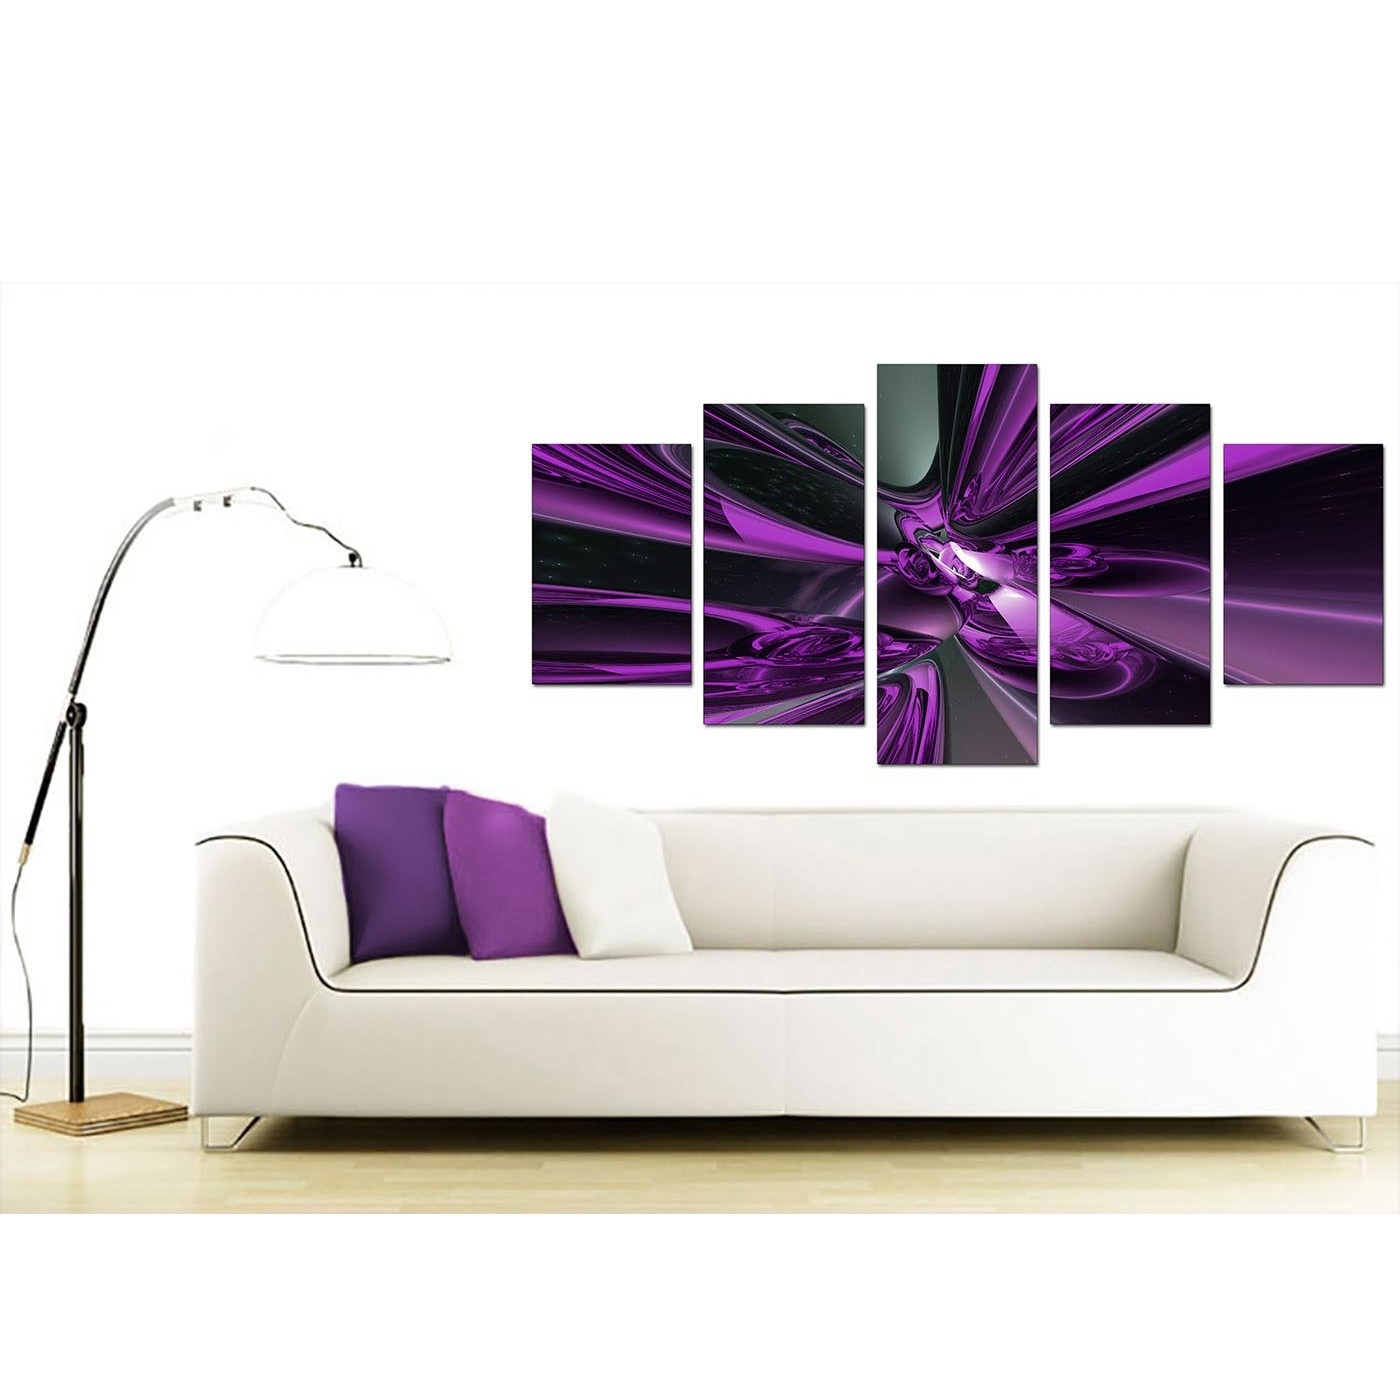 Extra Large Purple Abstract Canvas Prints Uk – 5 Piece With Regard To Most Recent Cheap Large Wall Art (View 9 of 20)